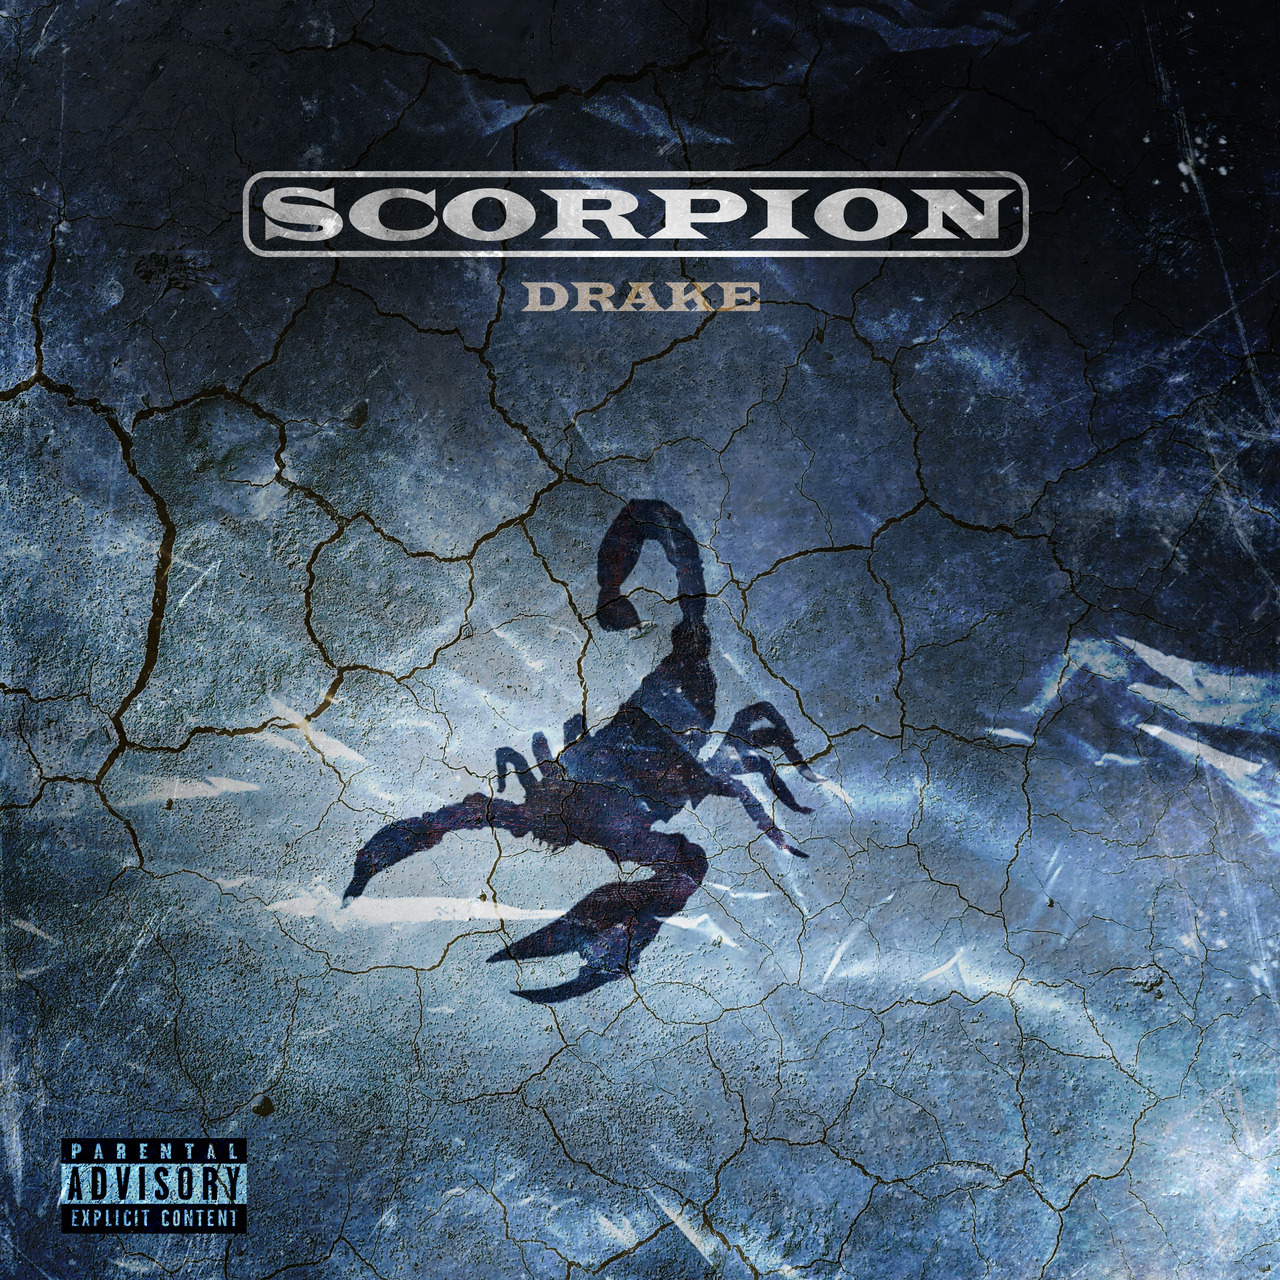 Scorpion Drake: Events That Happened In The Week